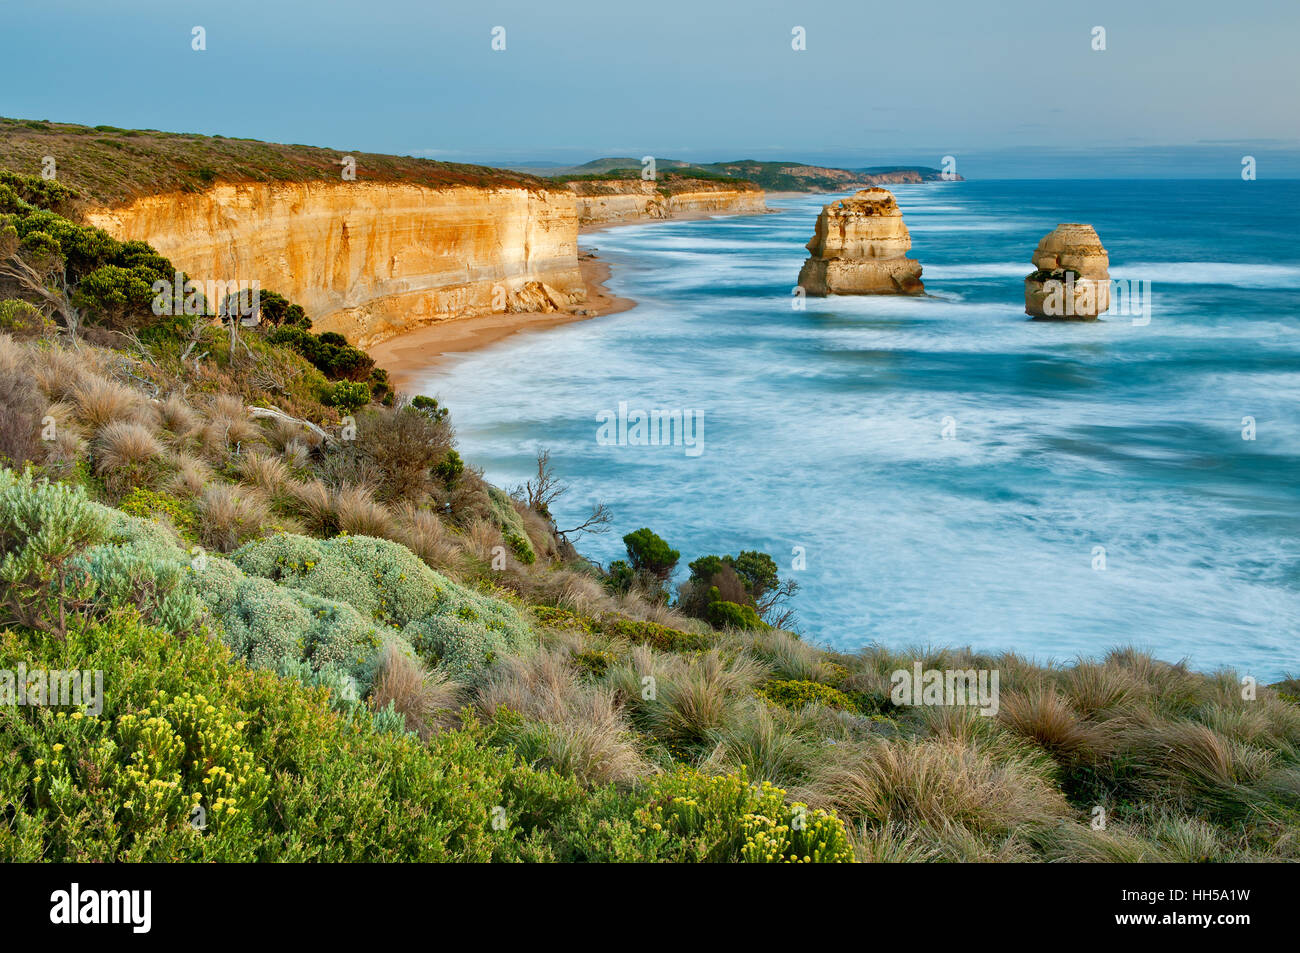 Two of 'The Twelve Apostles' at the Great Ocean Road. - Stock Image